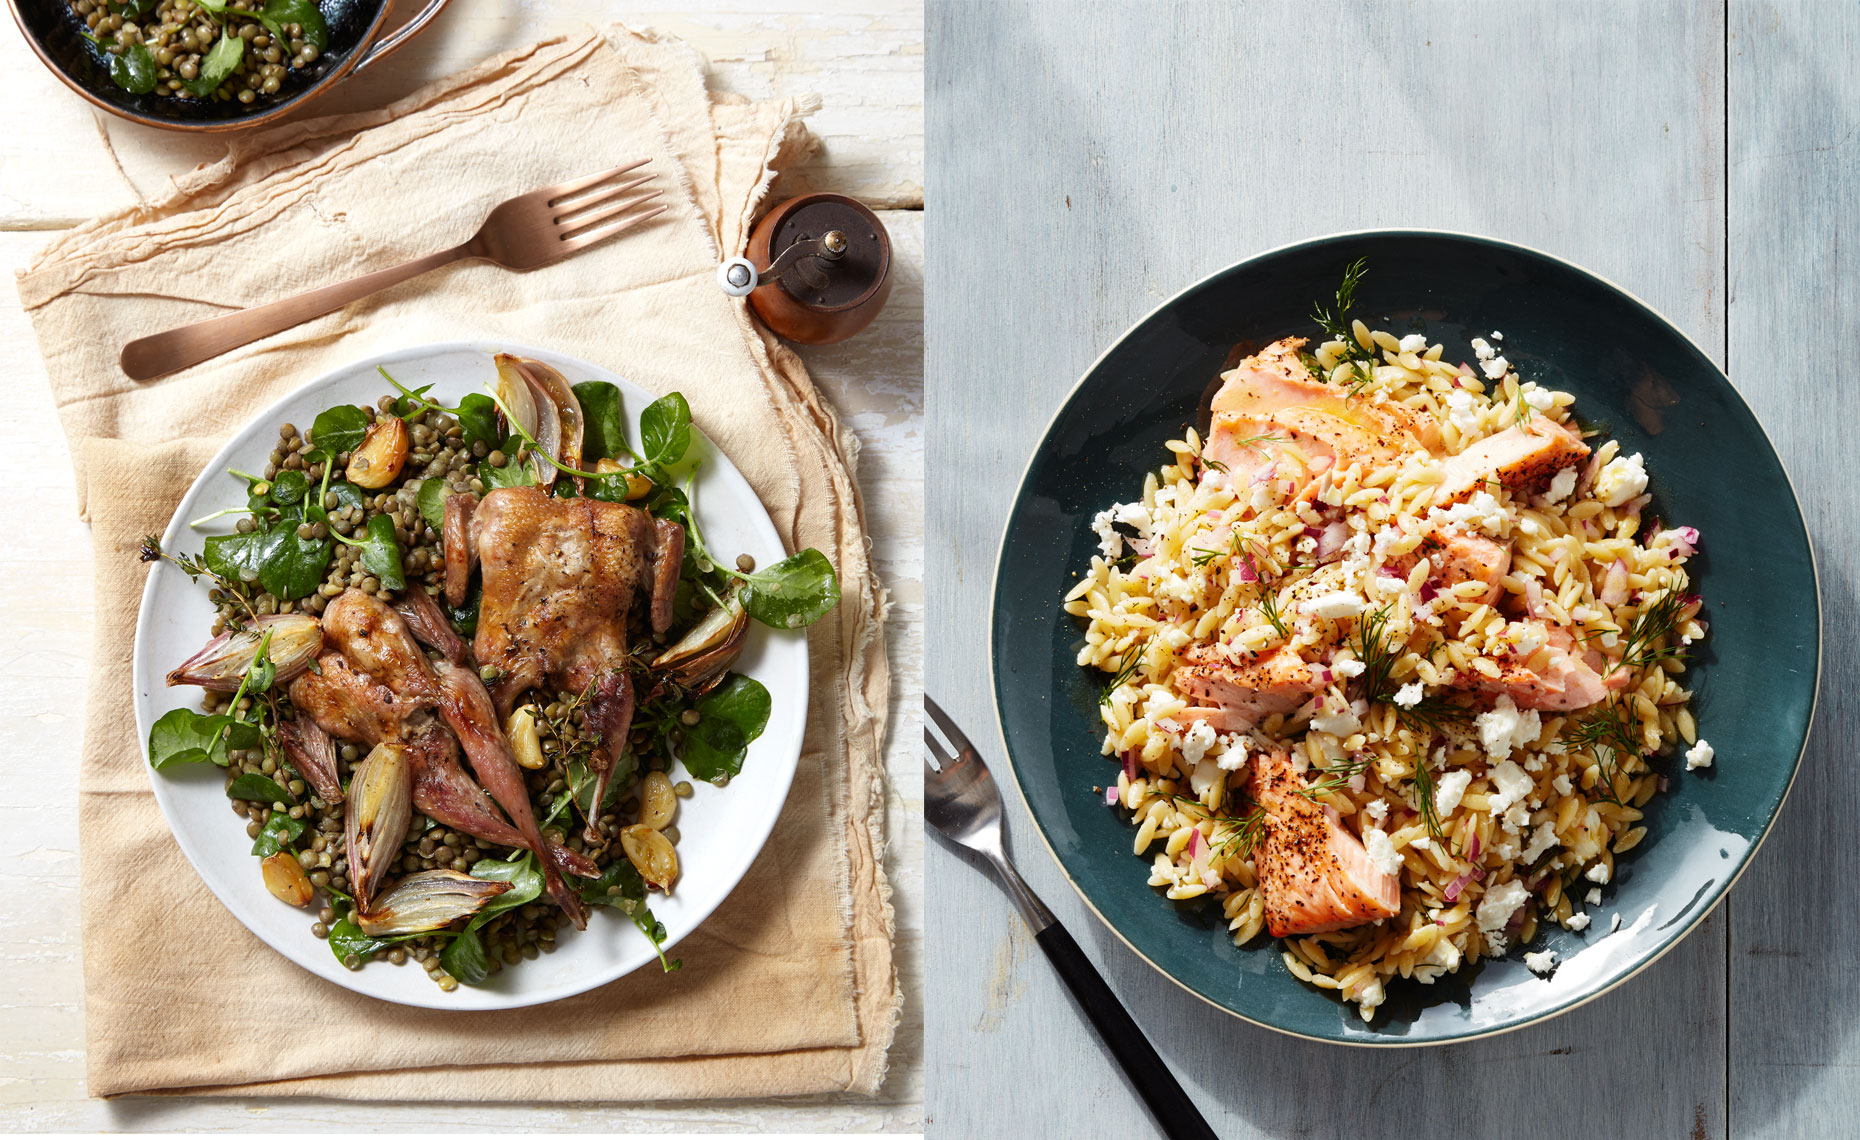 quail-and-salmon-orzo-resized.jpg